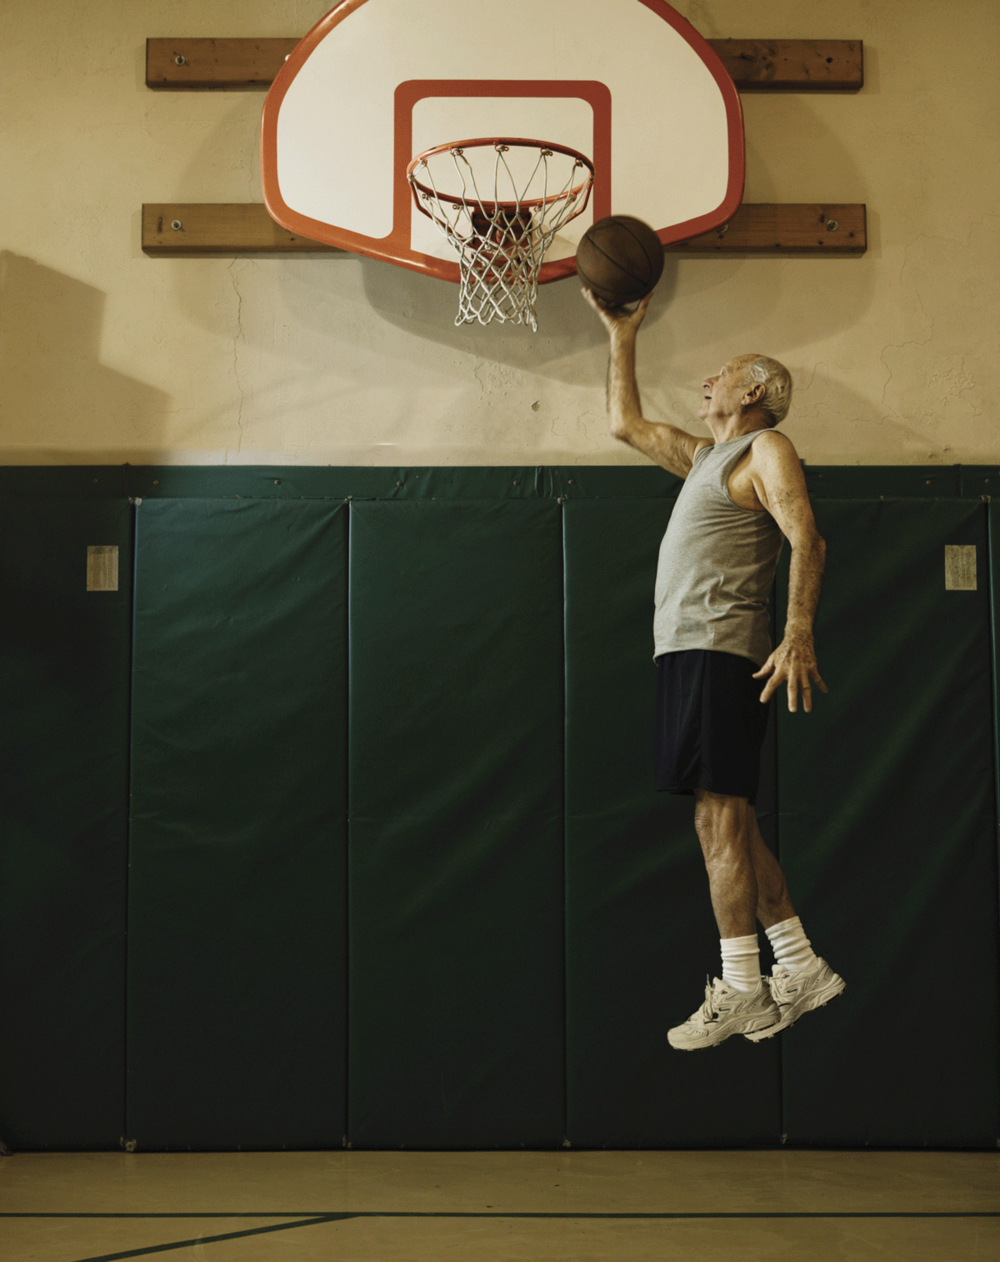 80 year old man playing basketball